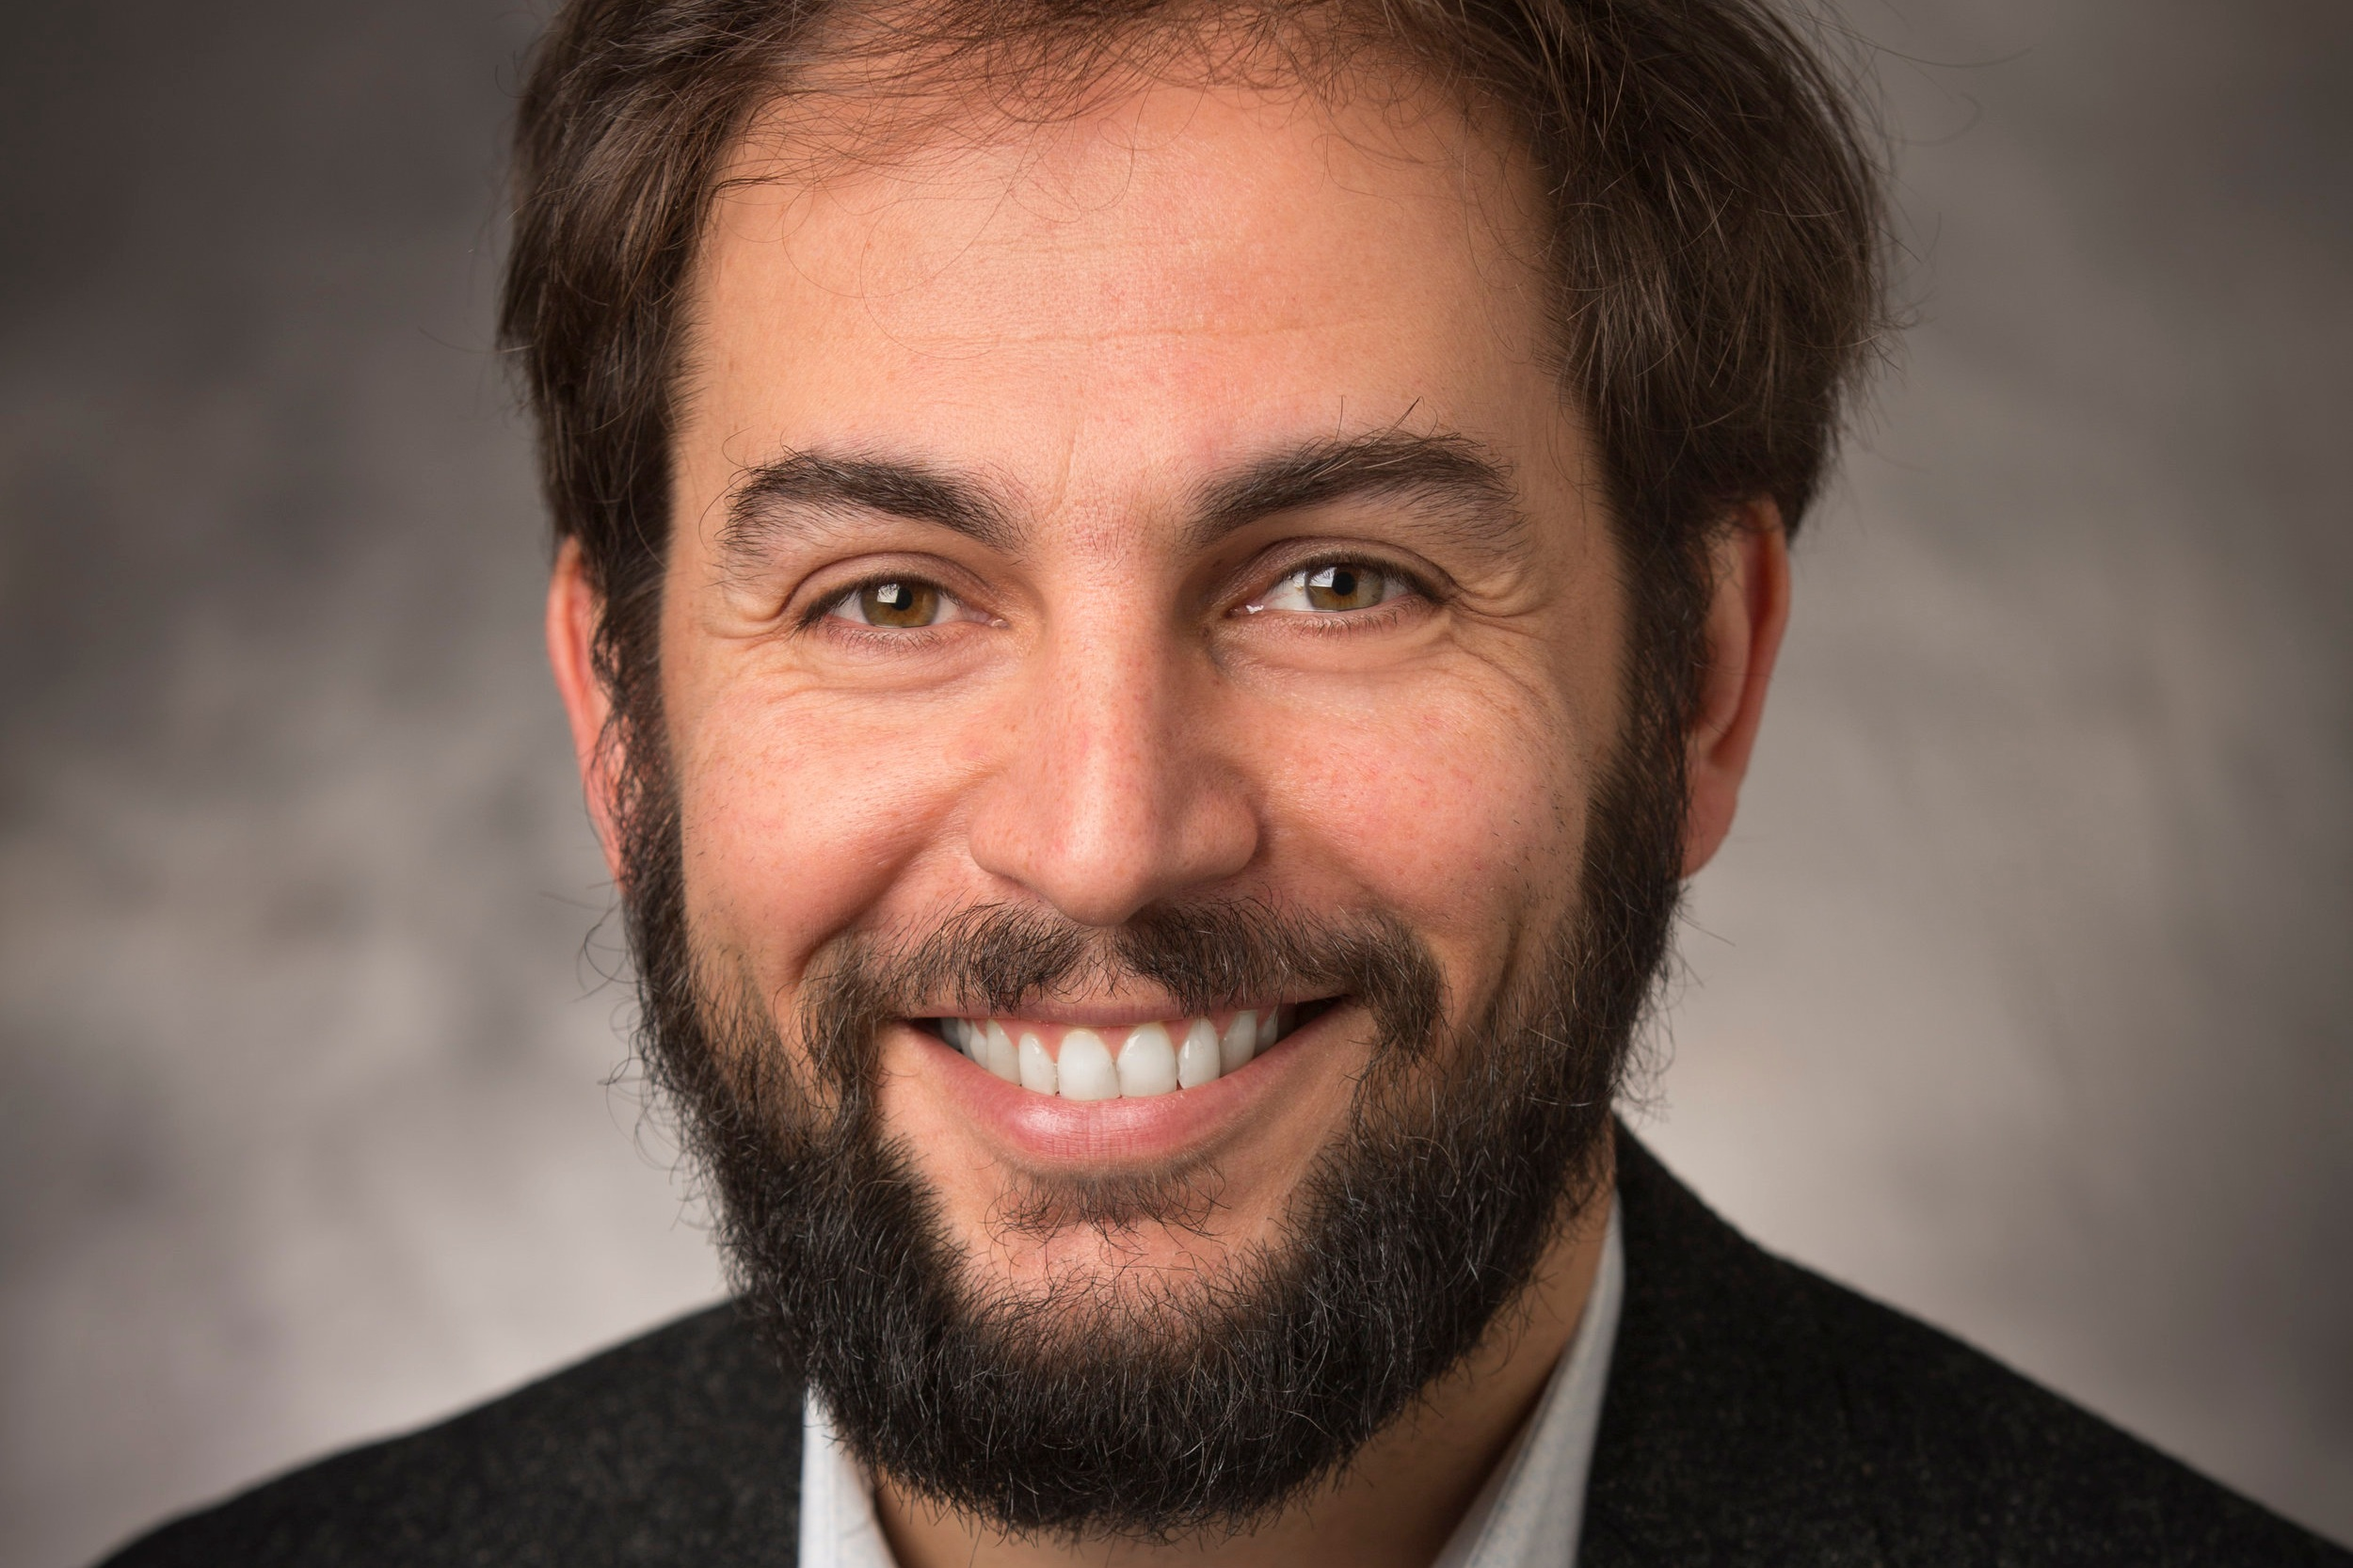 Roman Zinigrad - Member of the Drafting Committee, (Israel), J.S.D. candidate, Yale Law School; Visiting Fellow, Sciences Po Law School.